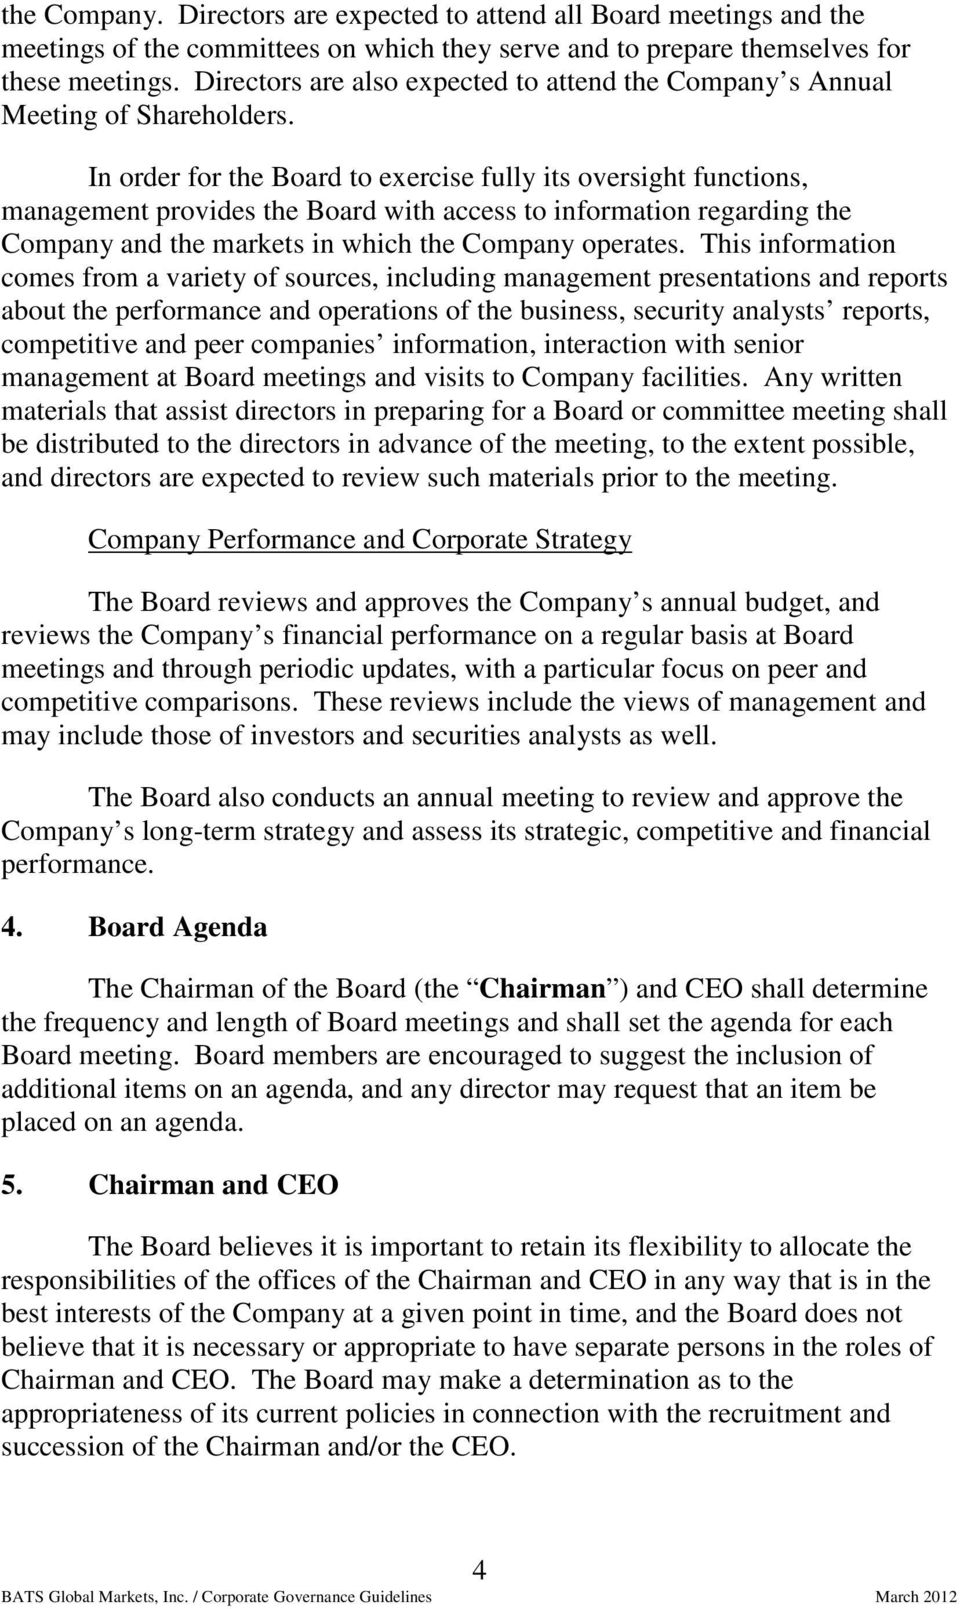 In order for the Board to exercise fully its oversight functions, management provides the Board with access to information regarding the Company and the markets in which the Company operates.